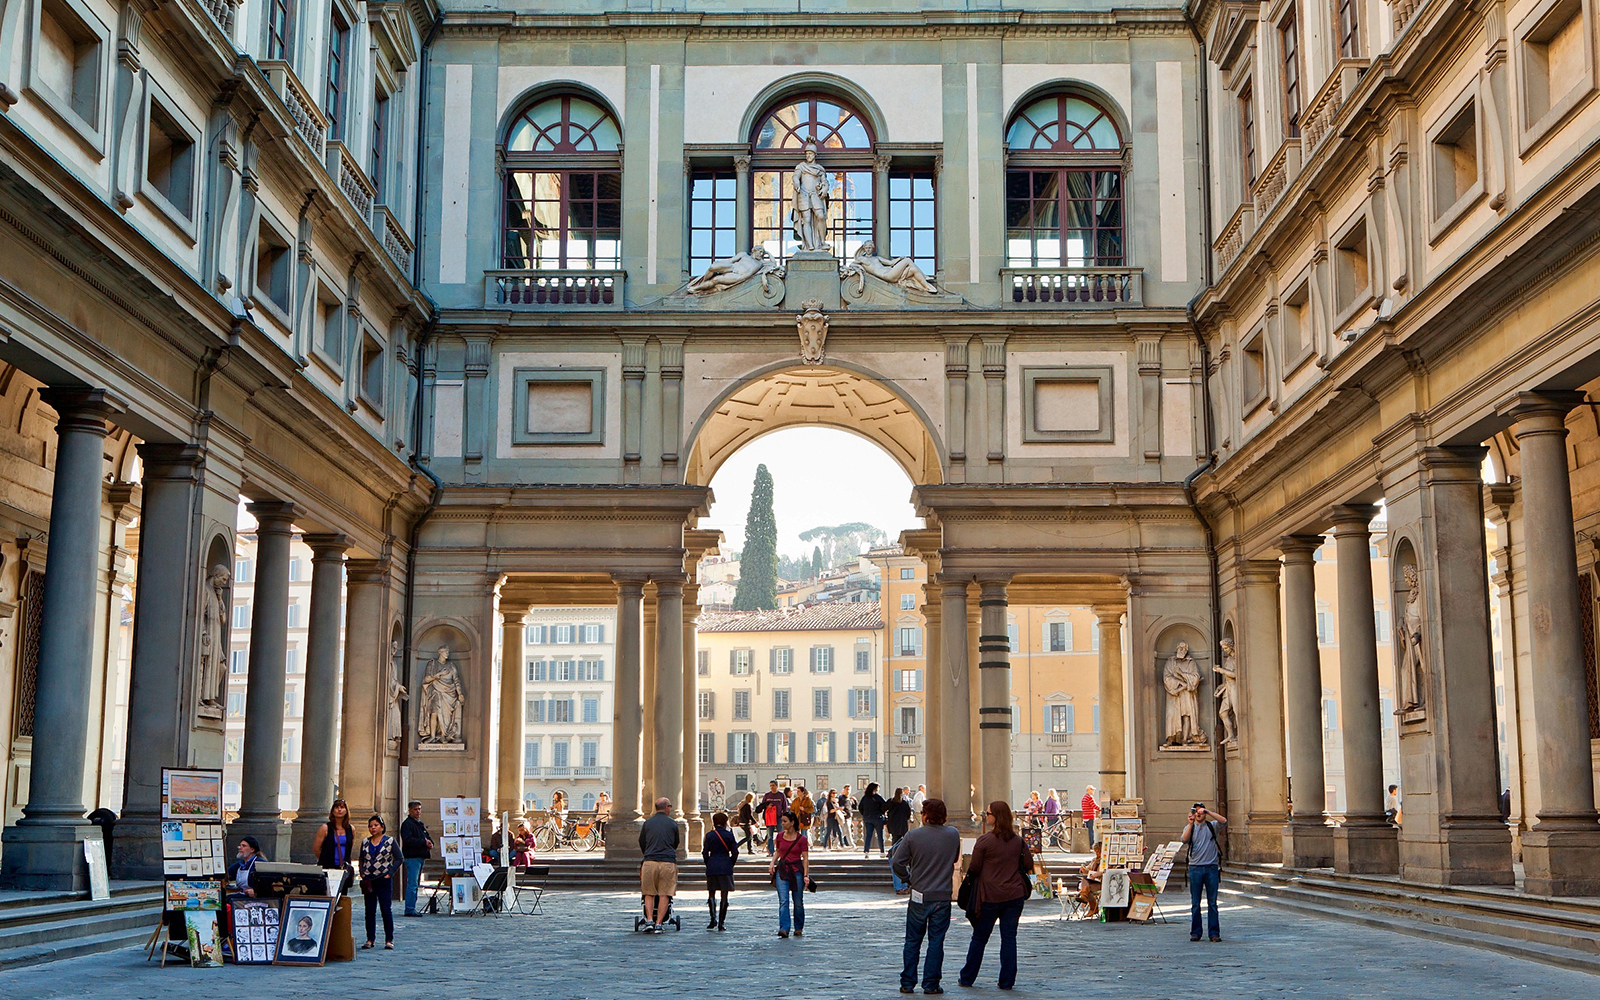 D2043c4b 3a89 45ba b9e5 c16519abc63f 7632 florence skip the line uffizi gallery 03